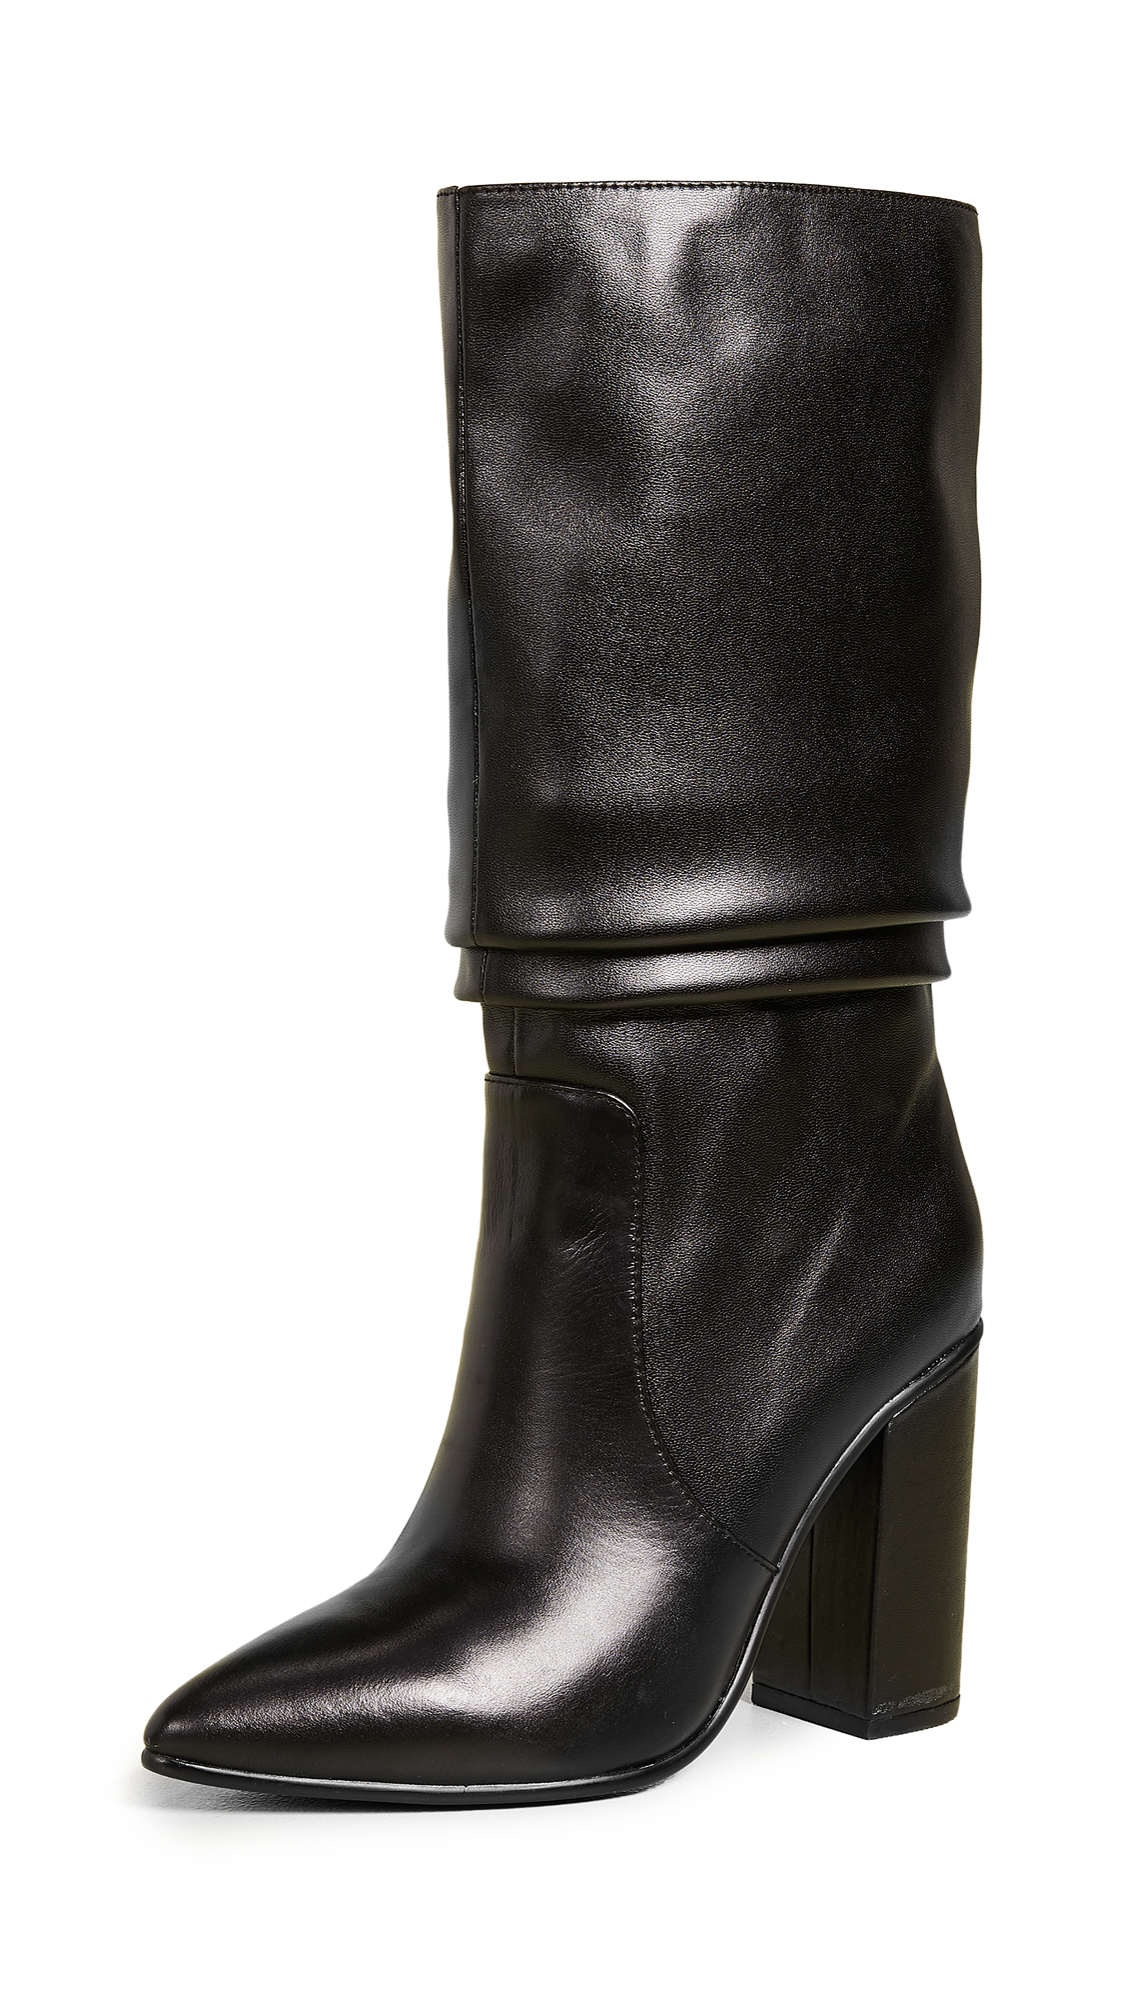 Sol Sana Waverly Tall Boots - Black